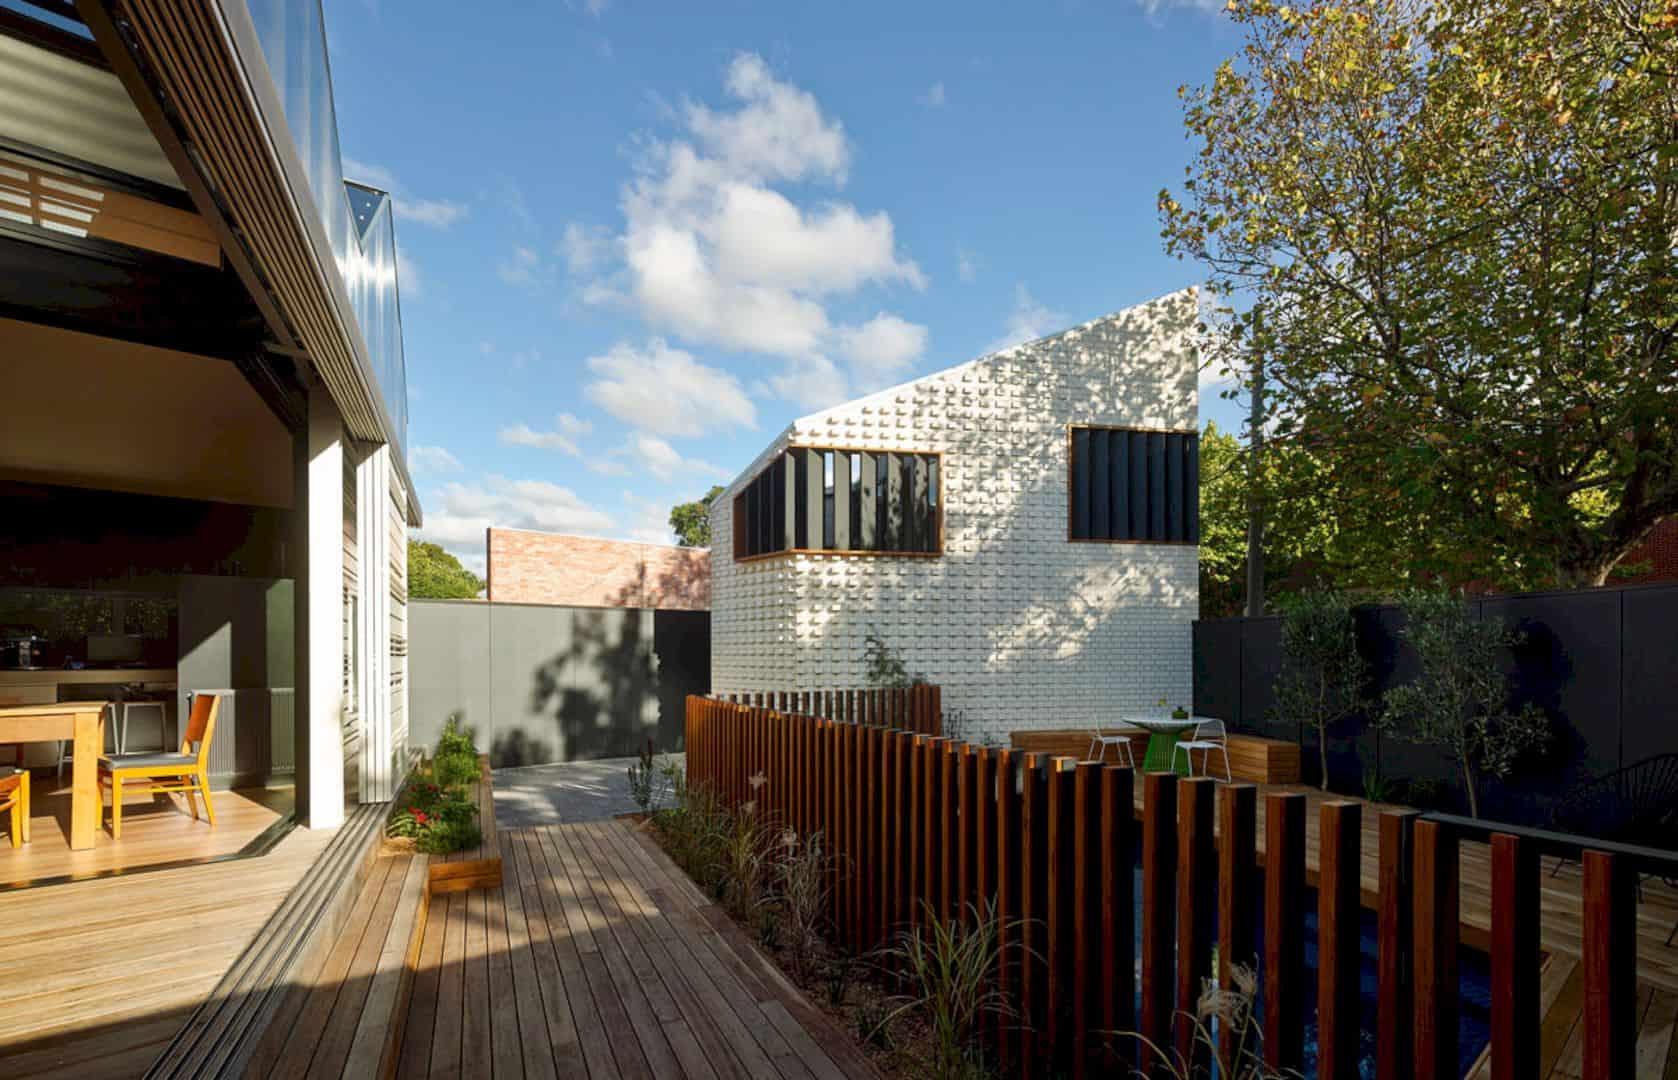 Little Brick Studio A Tight Space Residence That Engages At The Urban Scale Of Abbotsfords Busy Street 11